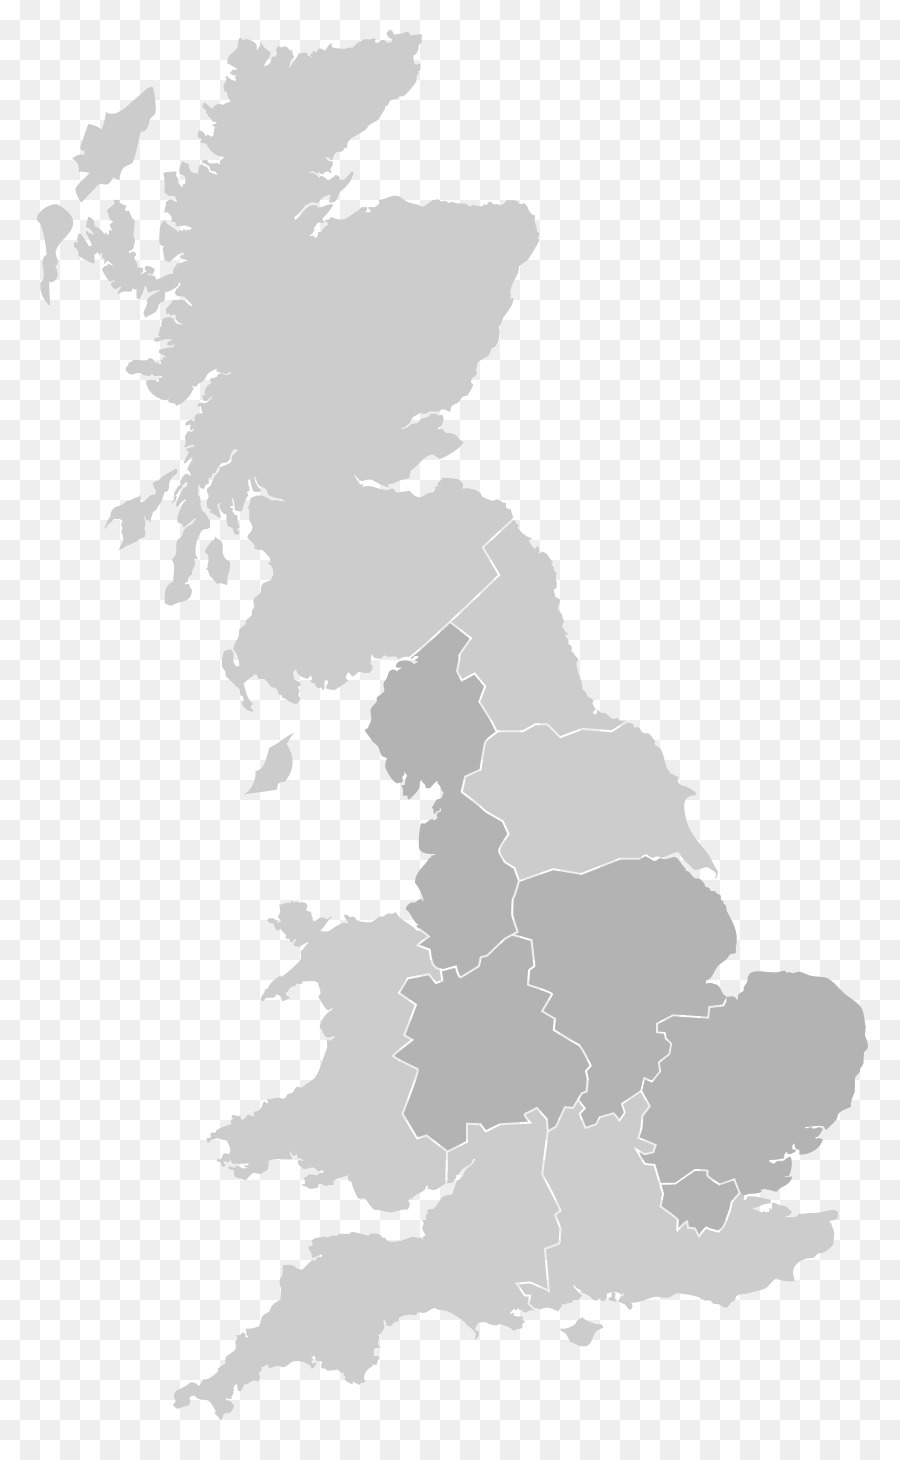 900x1460 United Kingdom Vector Map Royalty Free